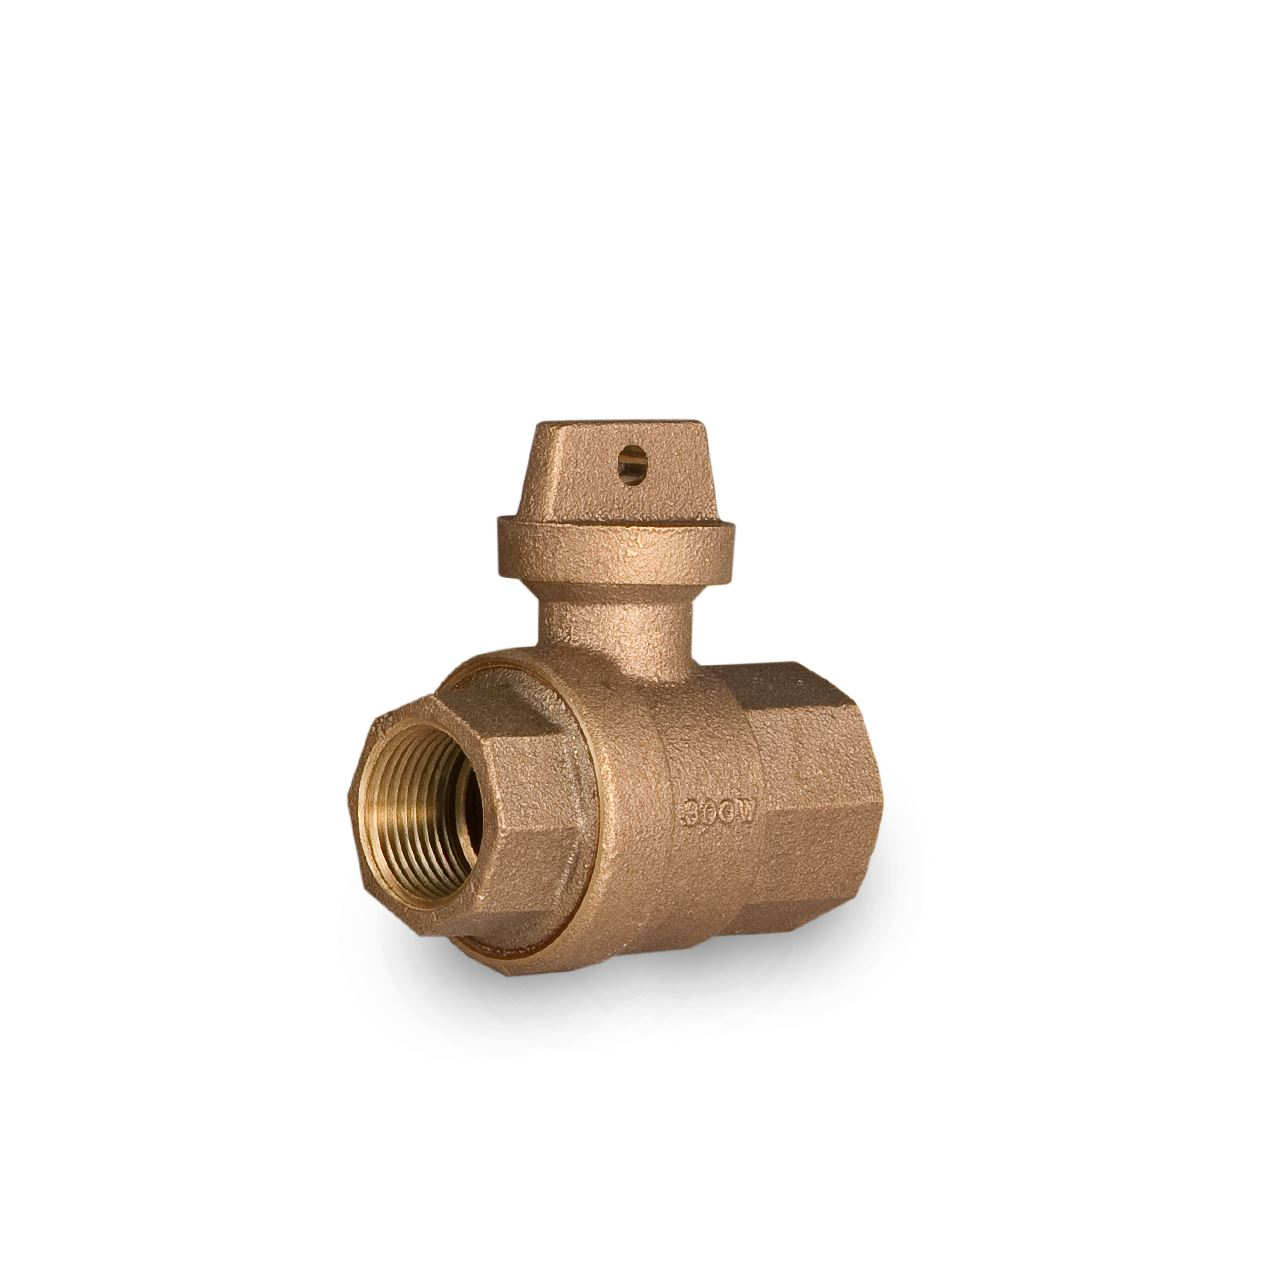 "A.Y. McDonald 6101 Flathead Curb Stop Ball Valve FNPT X FNPT 1"" Brass Brass valves, service fittings, brass fittings, A.Y. McDonald Valves, A.Y. McDonald Service Fittings, polylock fittings, ford fittings, ball valves, brass ball valves"